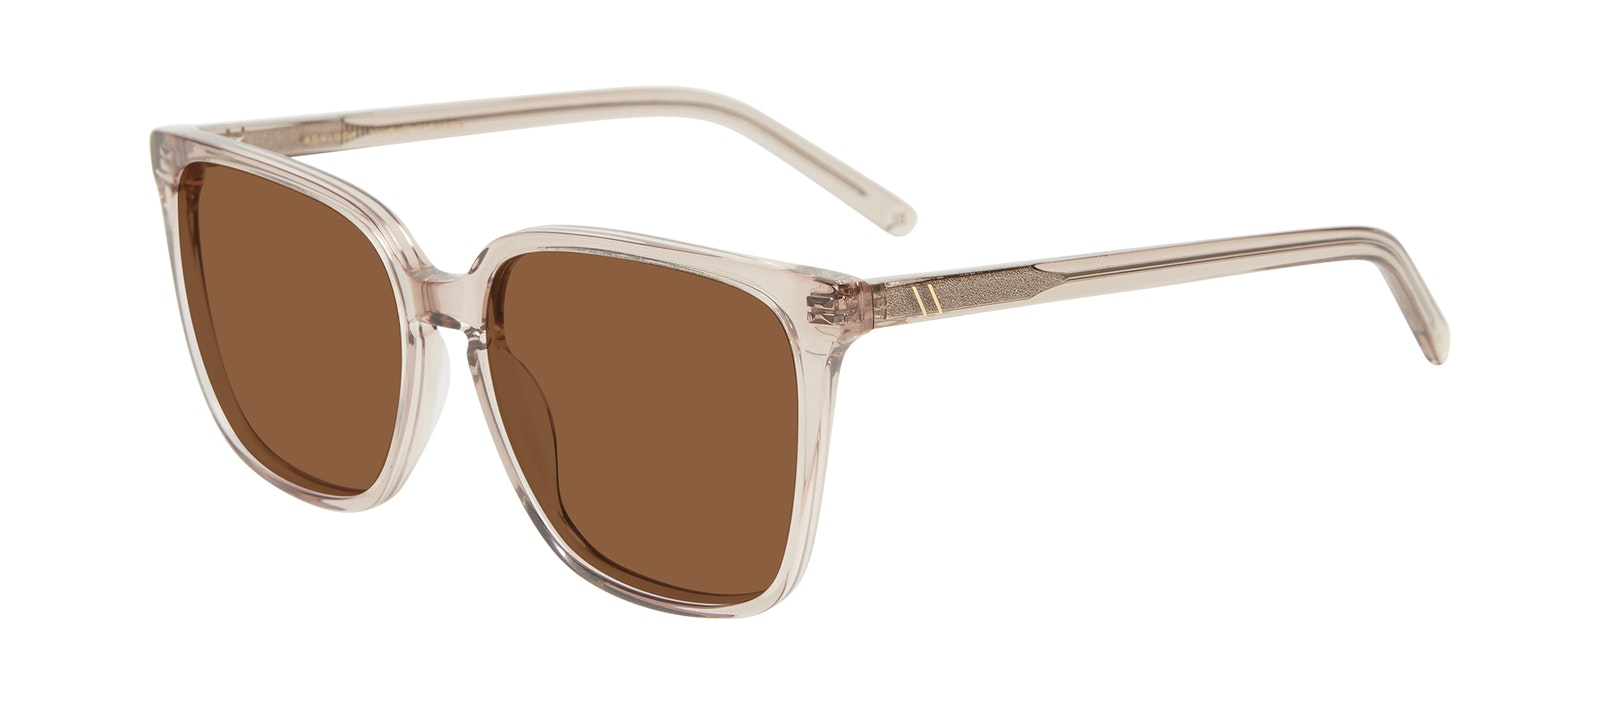 Affordable Fashion Glasses Square Sunglasses Women Runway Sand Tilt